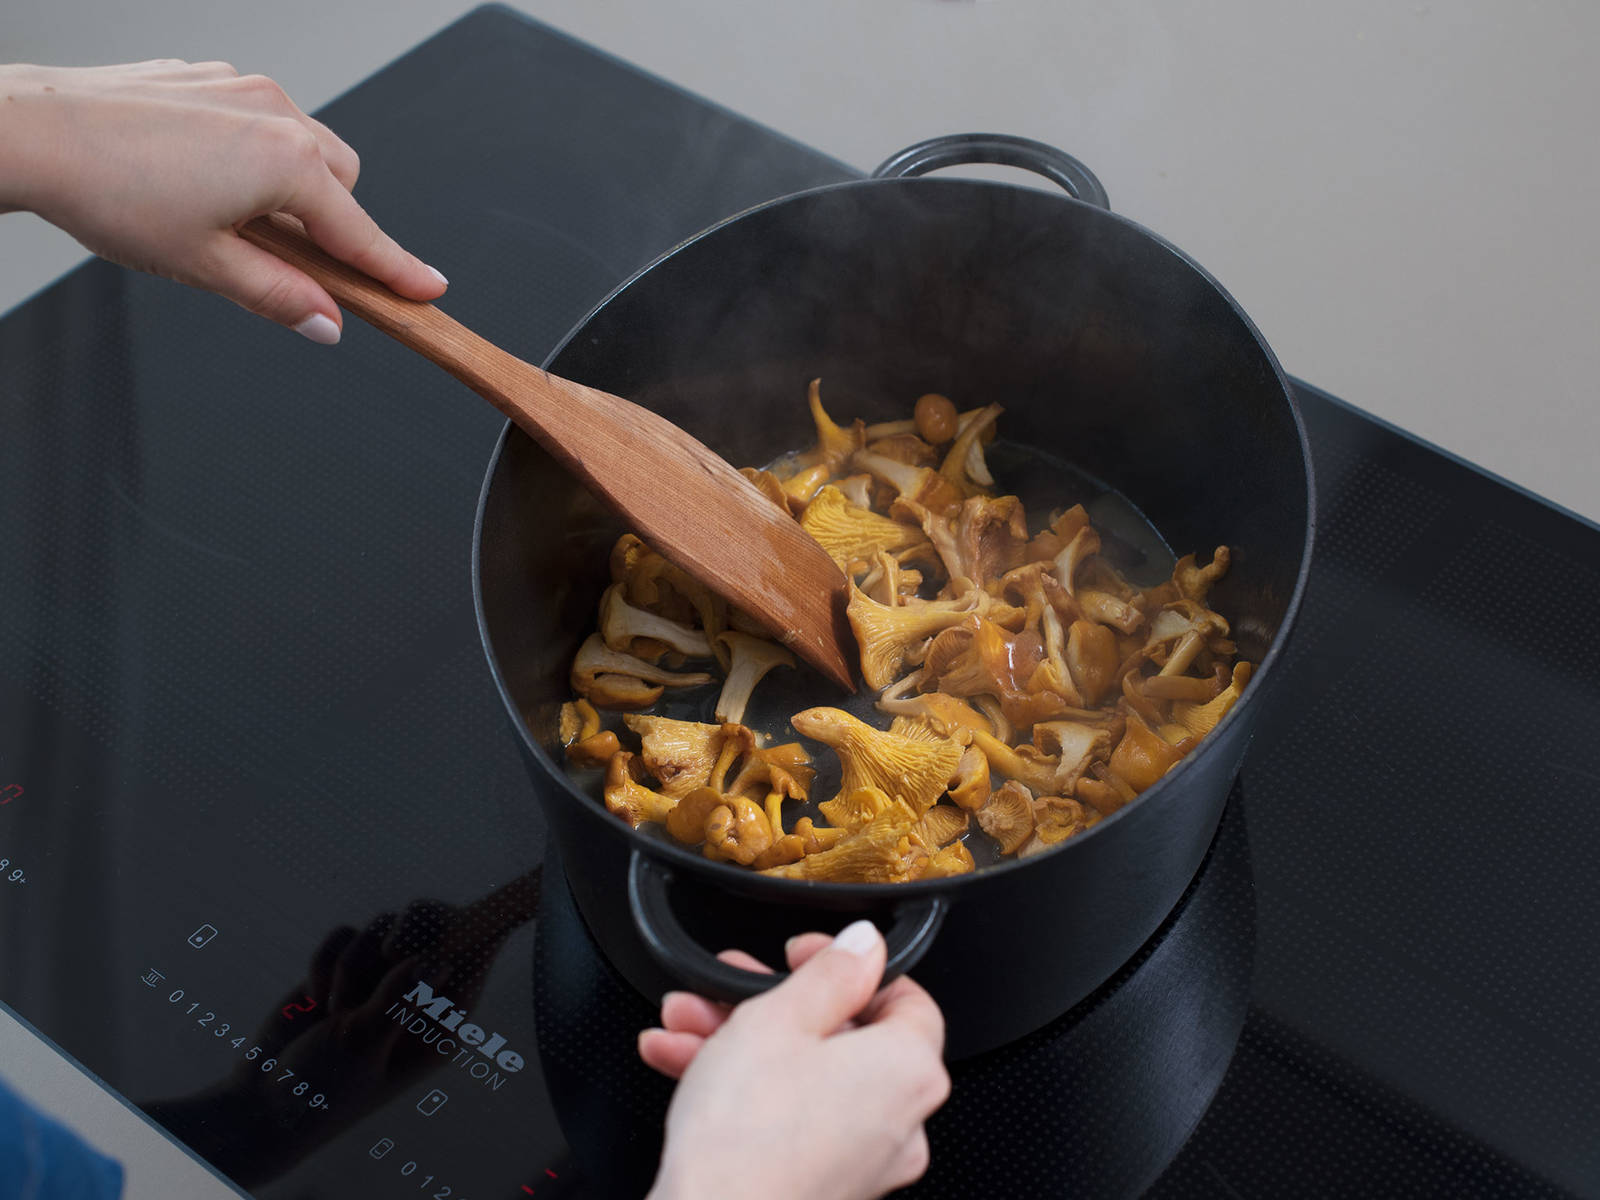 In a large pot, heat butter over medium-high heat, and sauté the chanterelles for approx. 3 – 4 min. Remove from pot and set aside. Add oil to the pot and fry meat over high heat for approx. 5 min., until browned on all sides. Remove from pot and set aside.